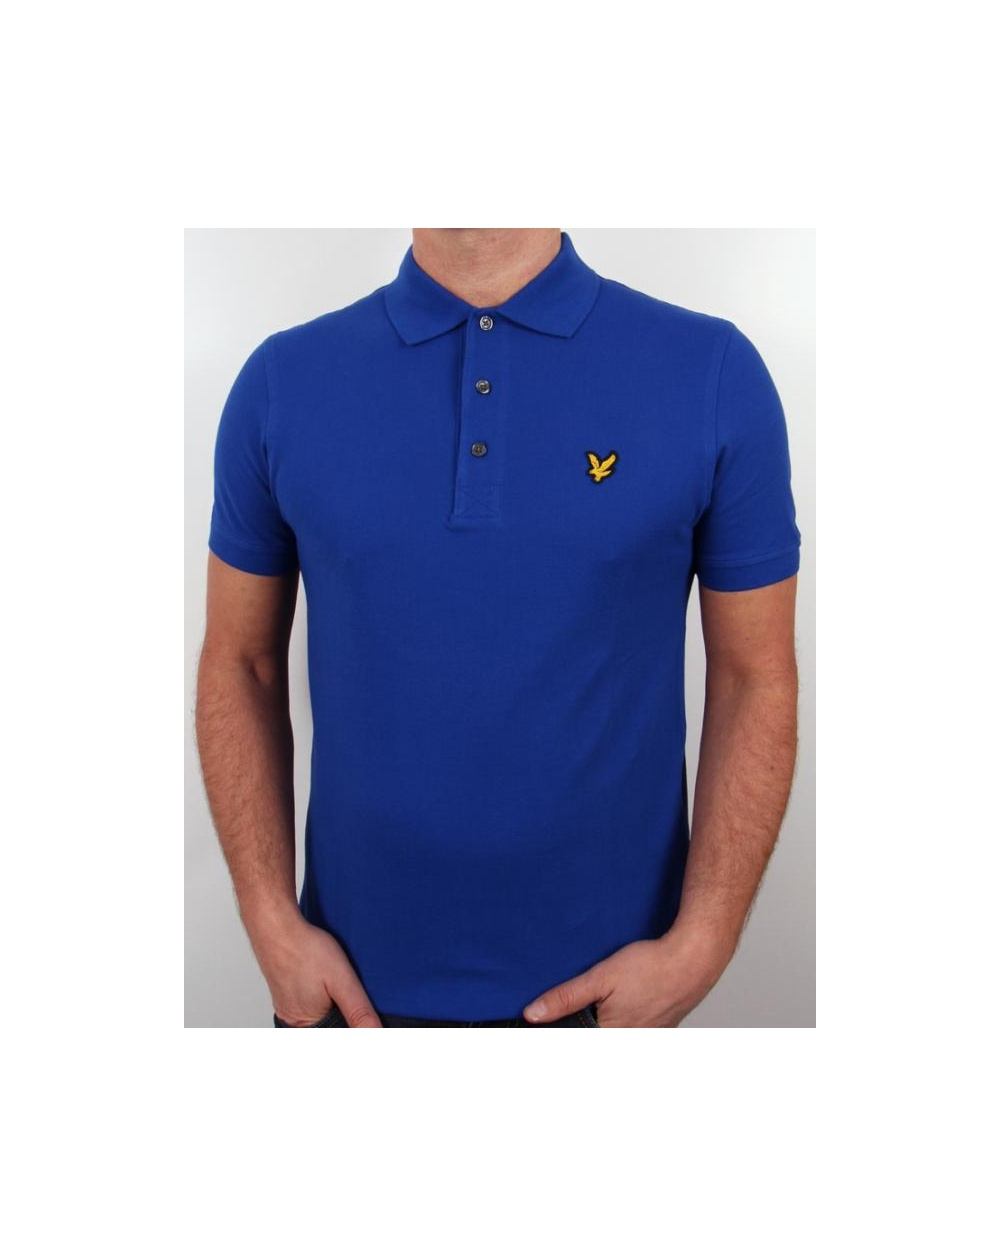 lyle and scott polo shirt s s royal blue lyle scott polo shirt. Black Bedroom Furniture Sets. Home Design Ideas